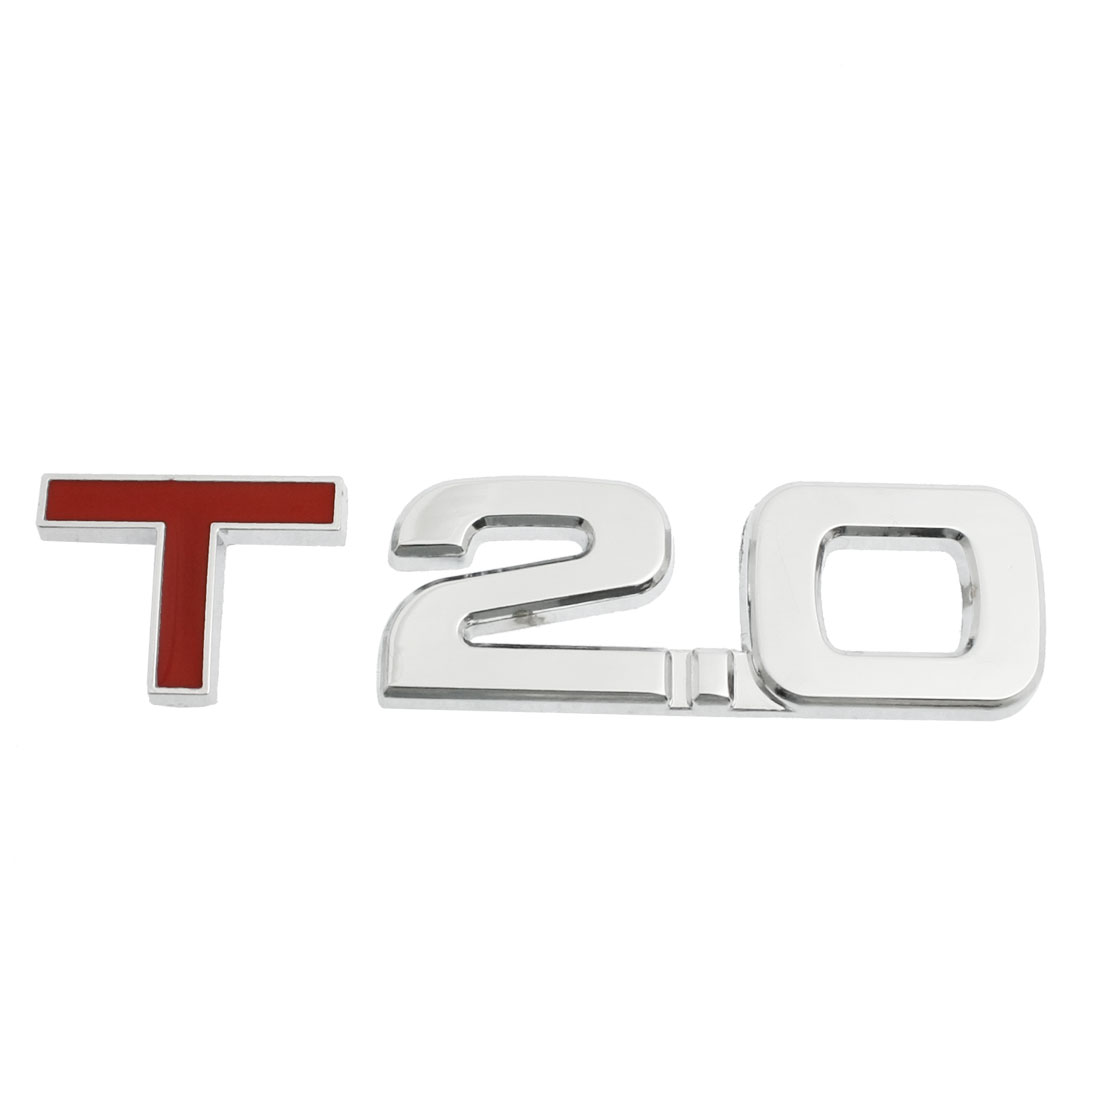 Silver Tone Red Alloy 2.0T Displacement Badge Sticker for Car